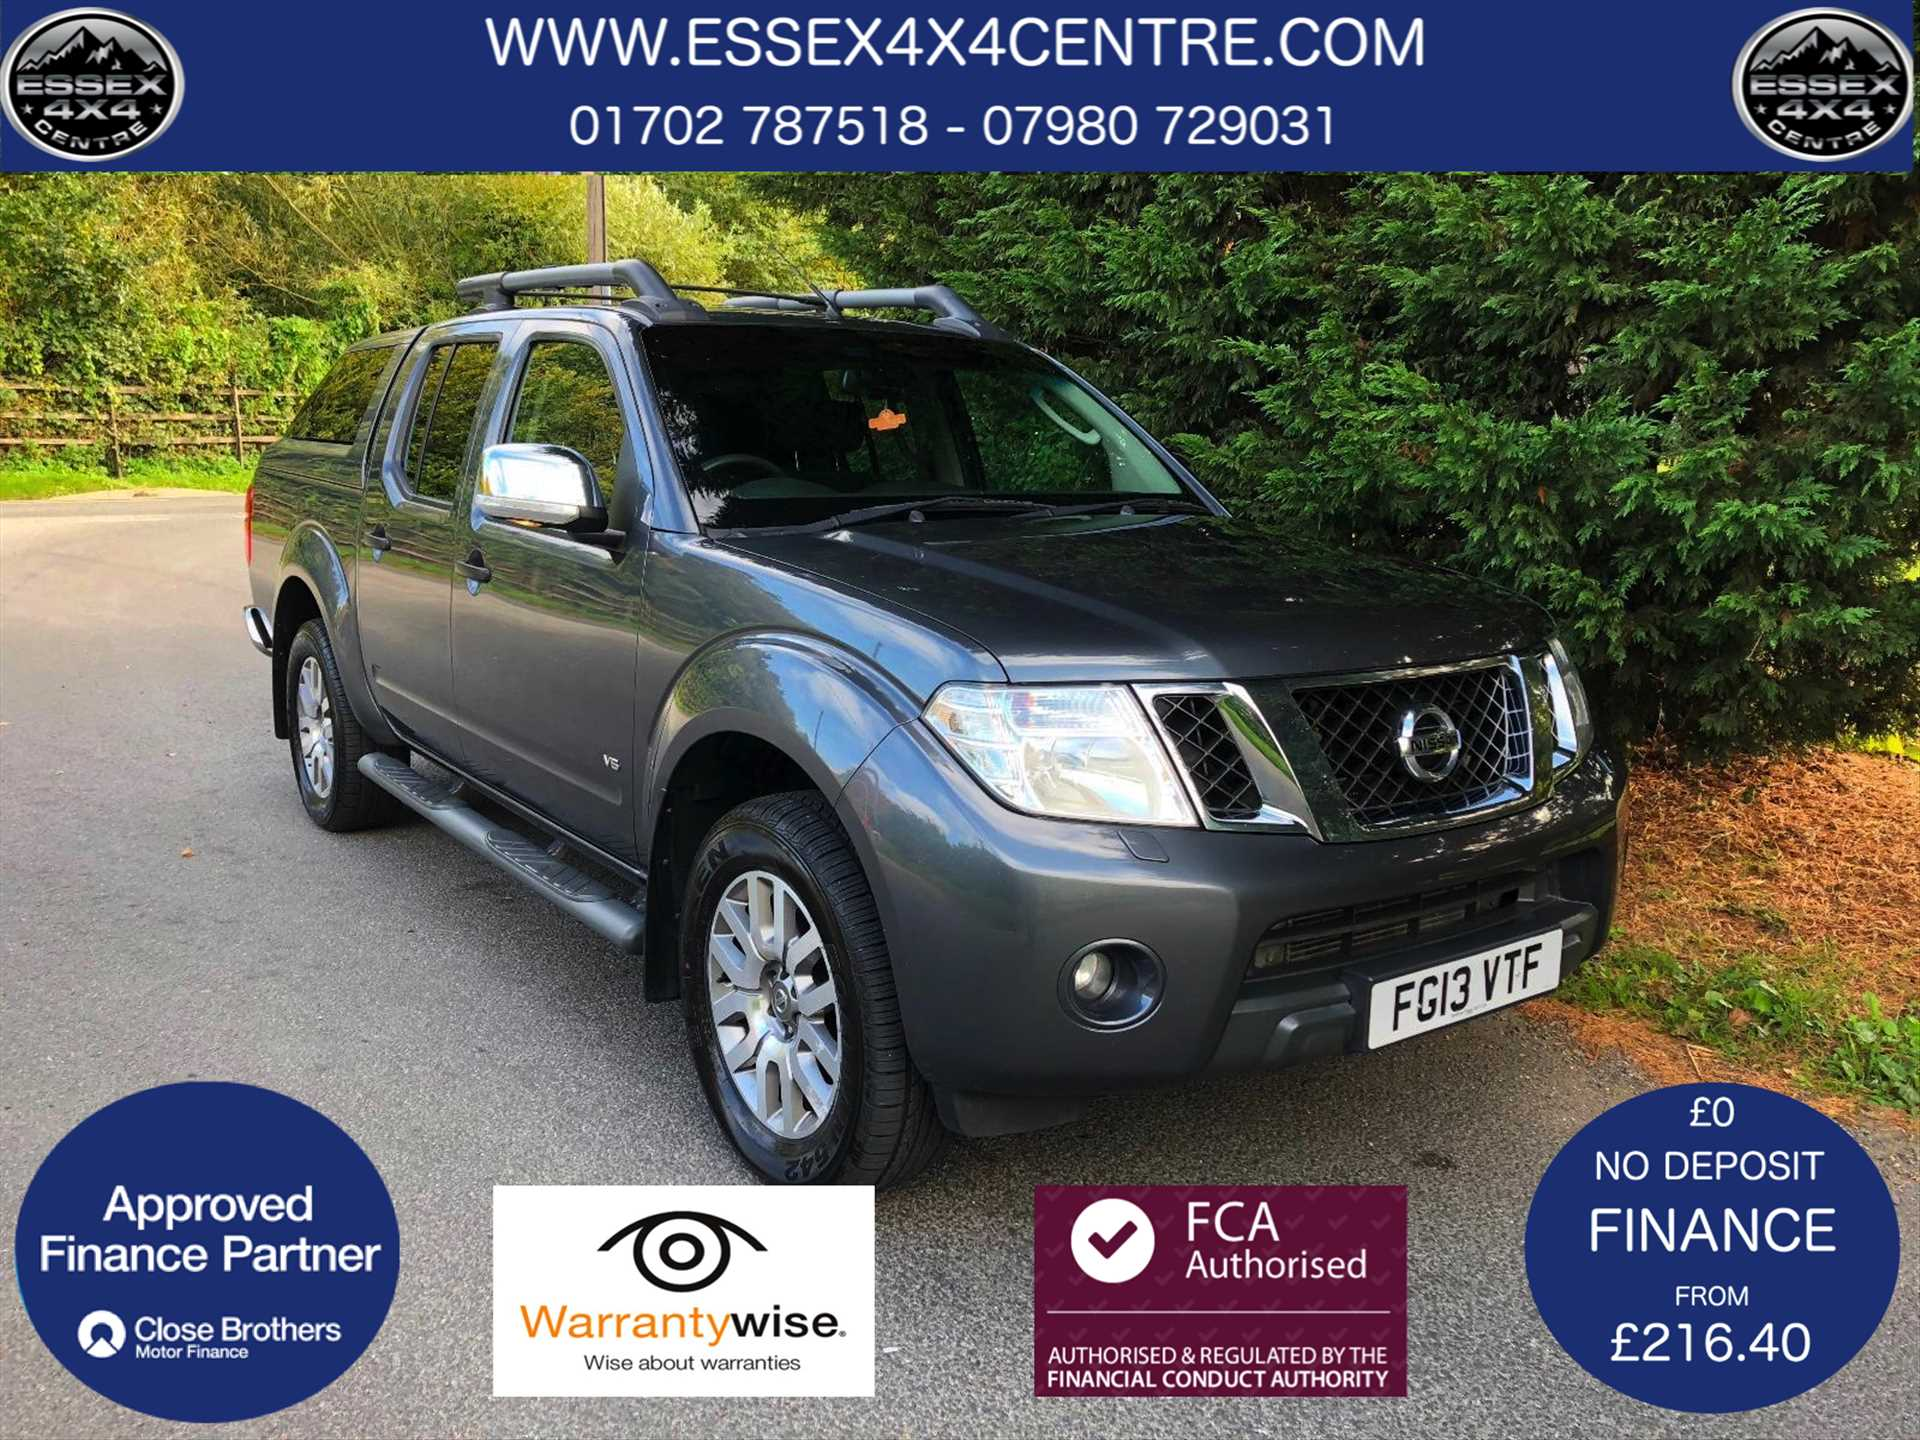 Nissan Navara Outlaw 30 Dci V6 Turbo Diesel Automatic 4x4 Pick Up Old Pickup Trucks For Sale 2013 13 Truck